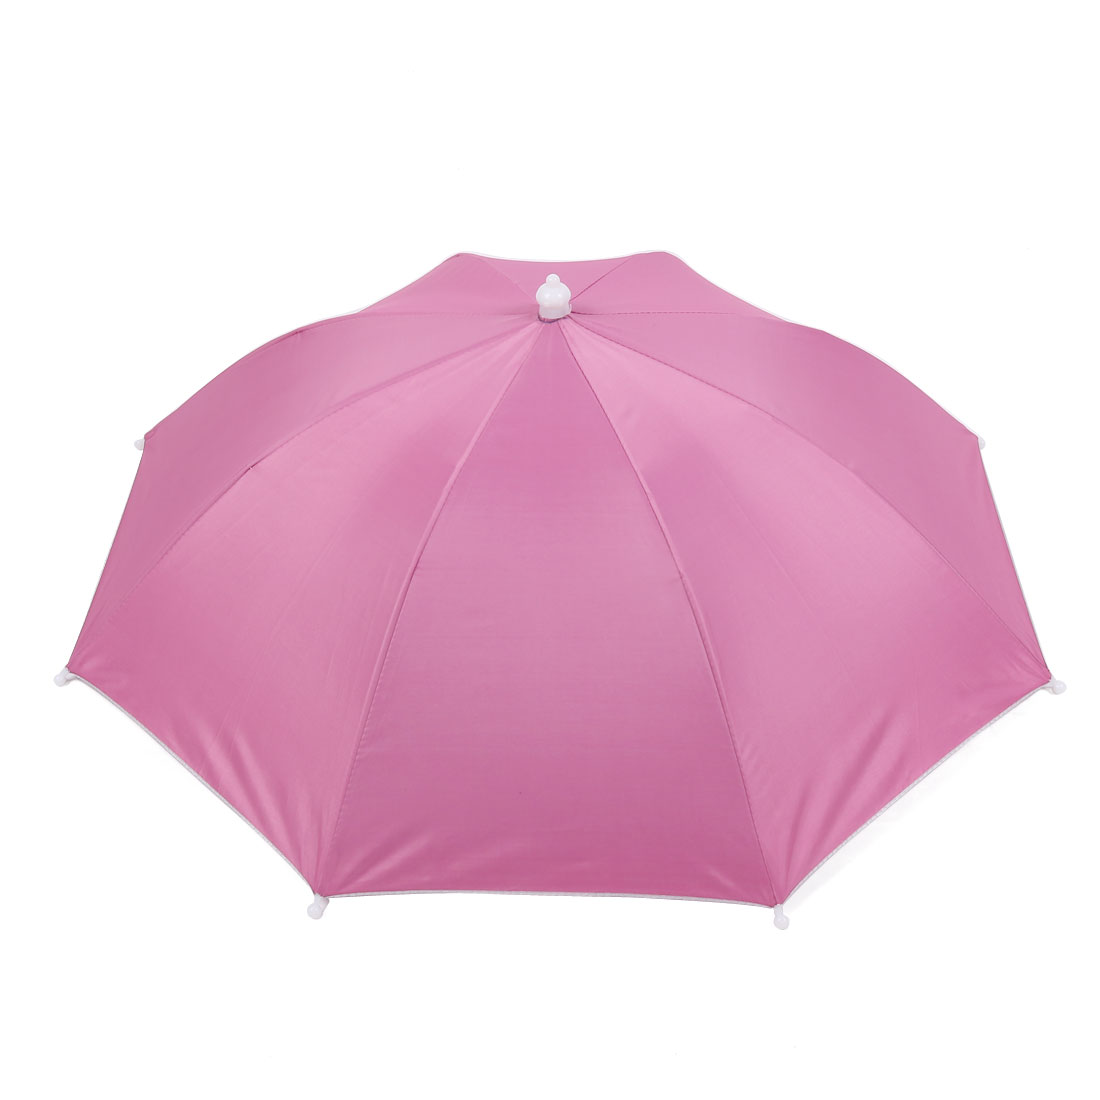 Outdoor Sports Game Fishing Umbrella Hat Headwear Fushsia